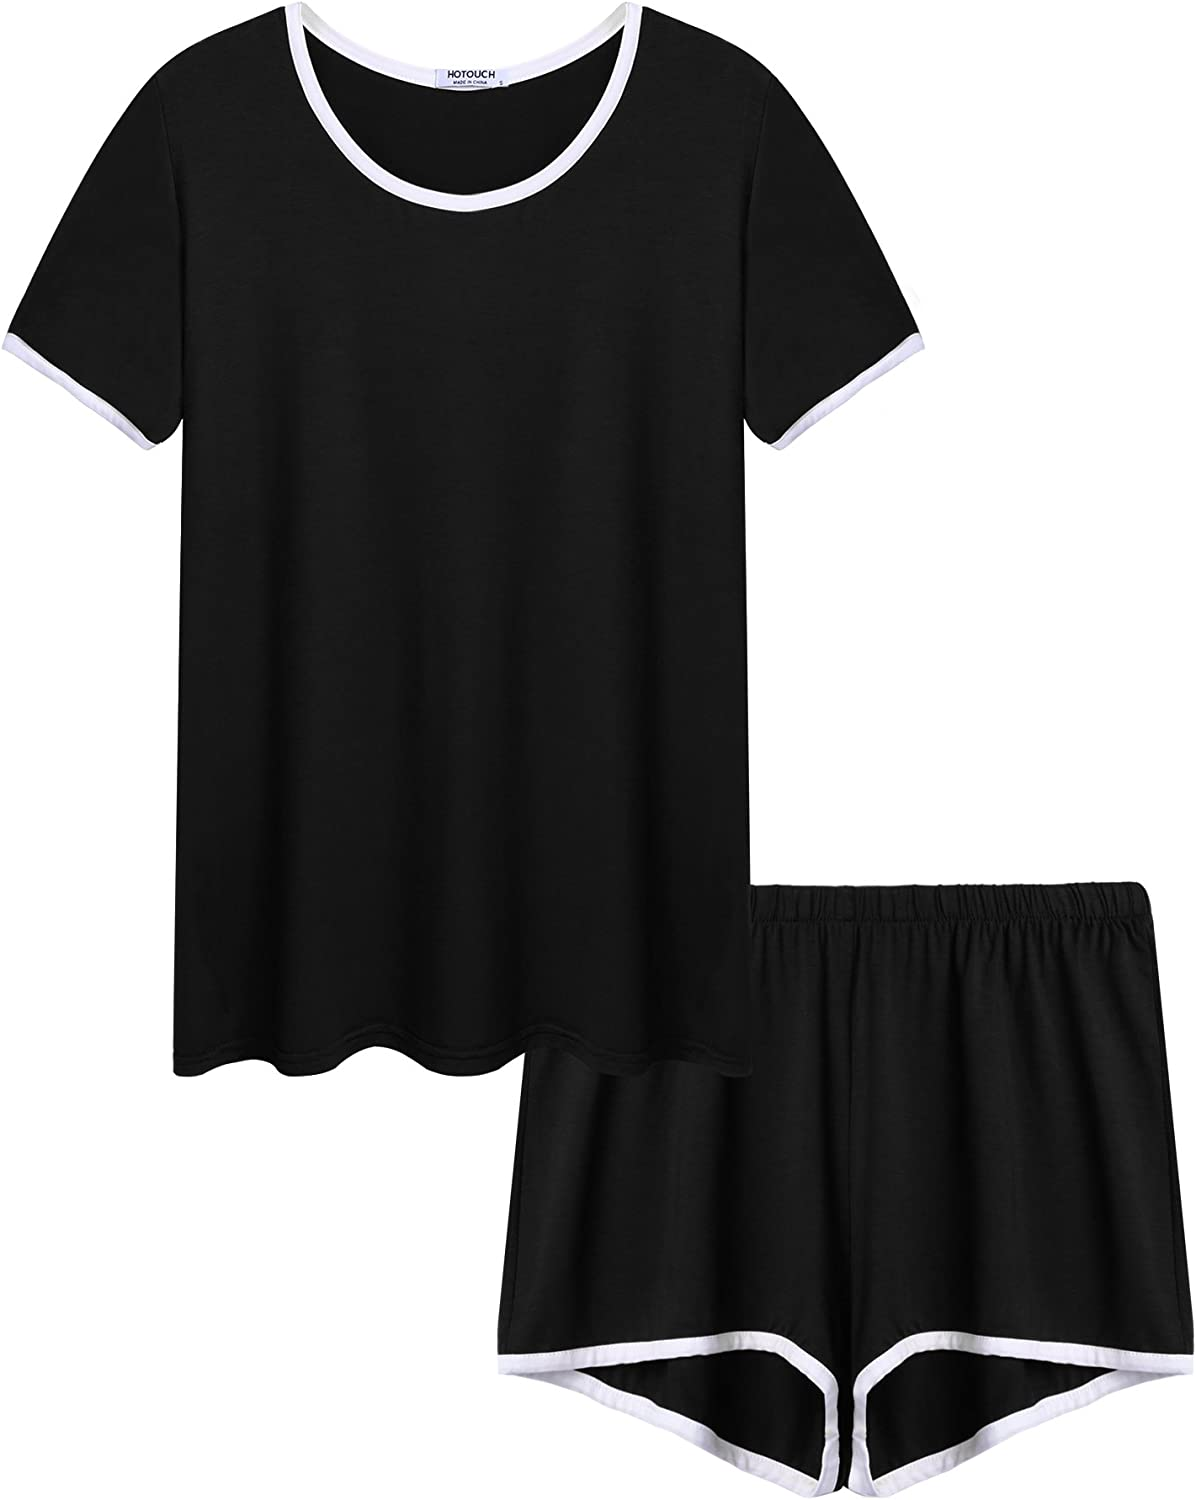 HOTOUCH Women Two Pieces Pajamas Short Sleeve TShirt and Shorts Set Lounge Sleepwear 3 colors SXXL